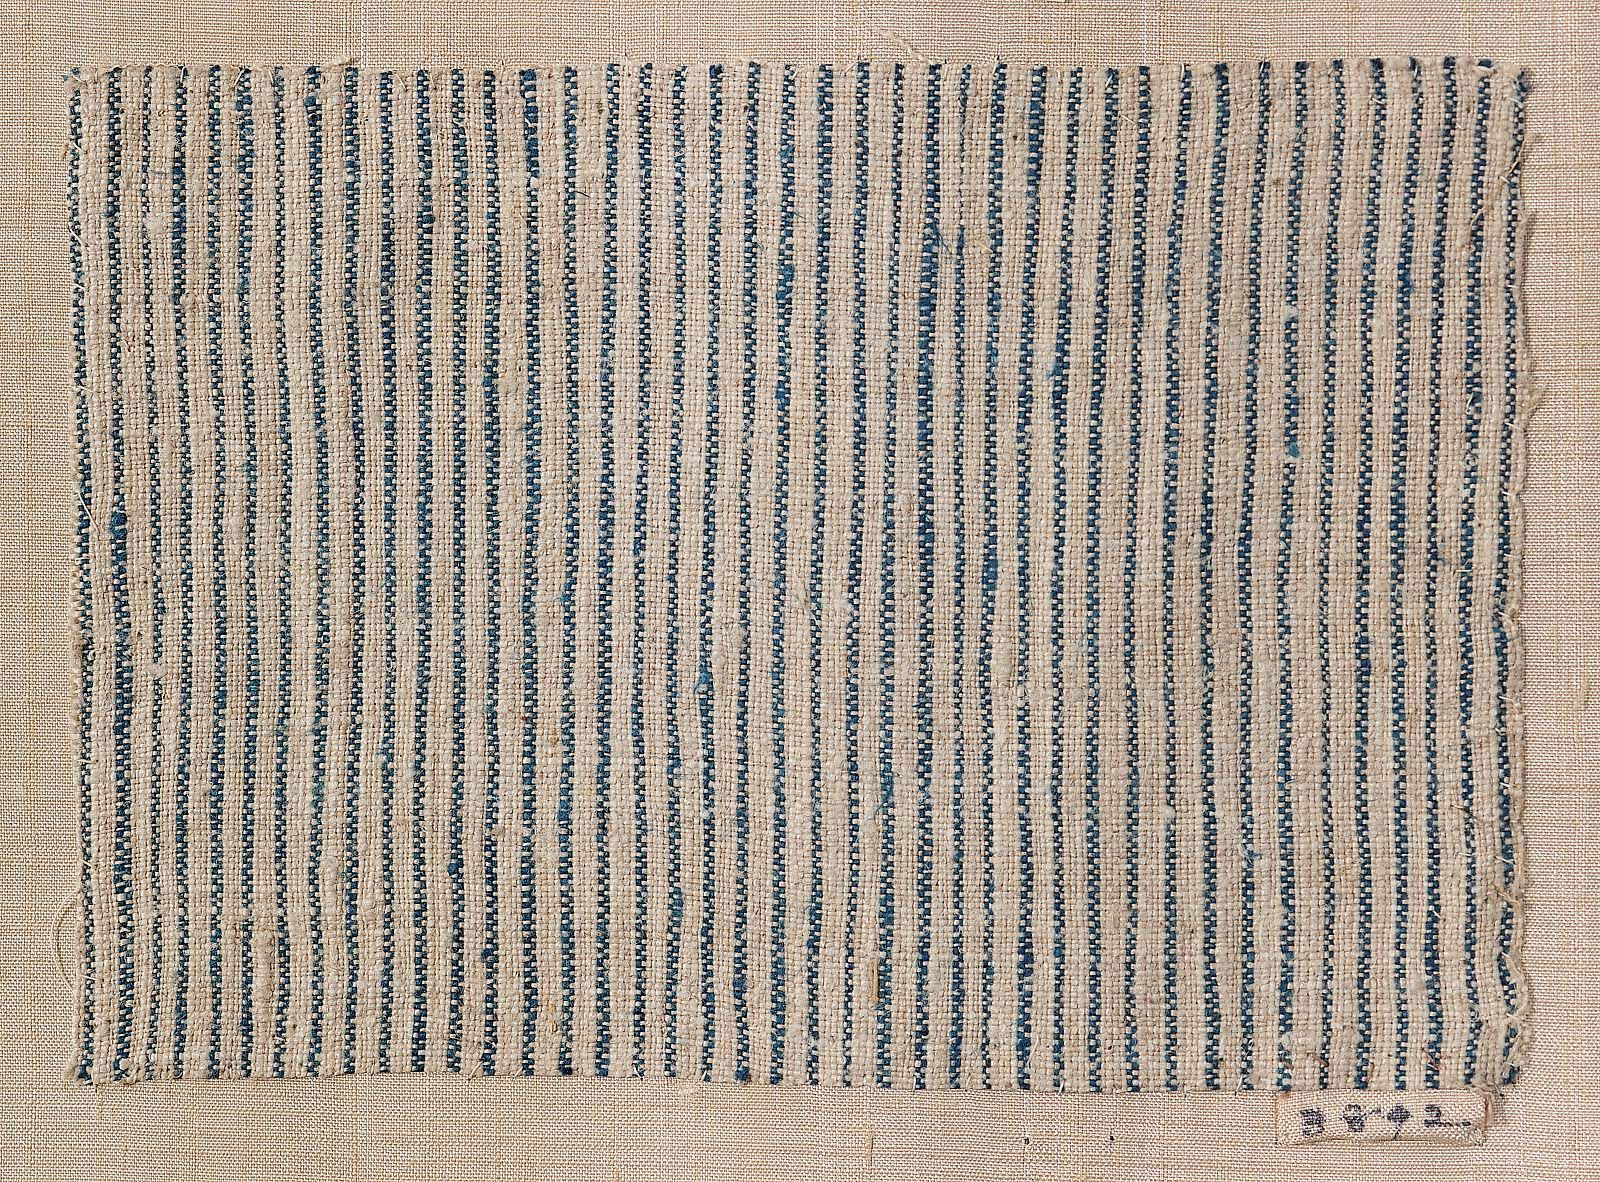 American | Blue and white striped textile fragment